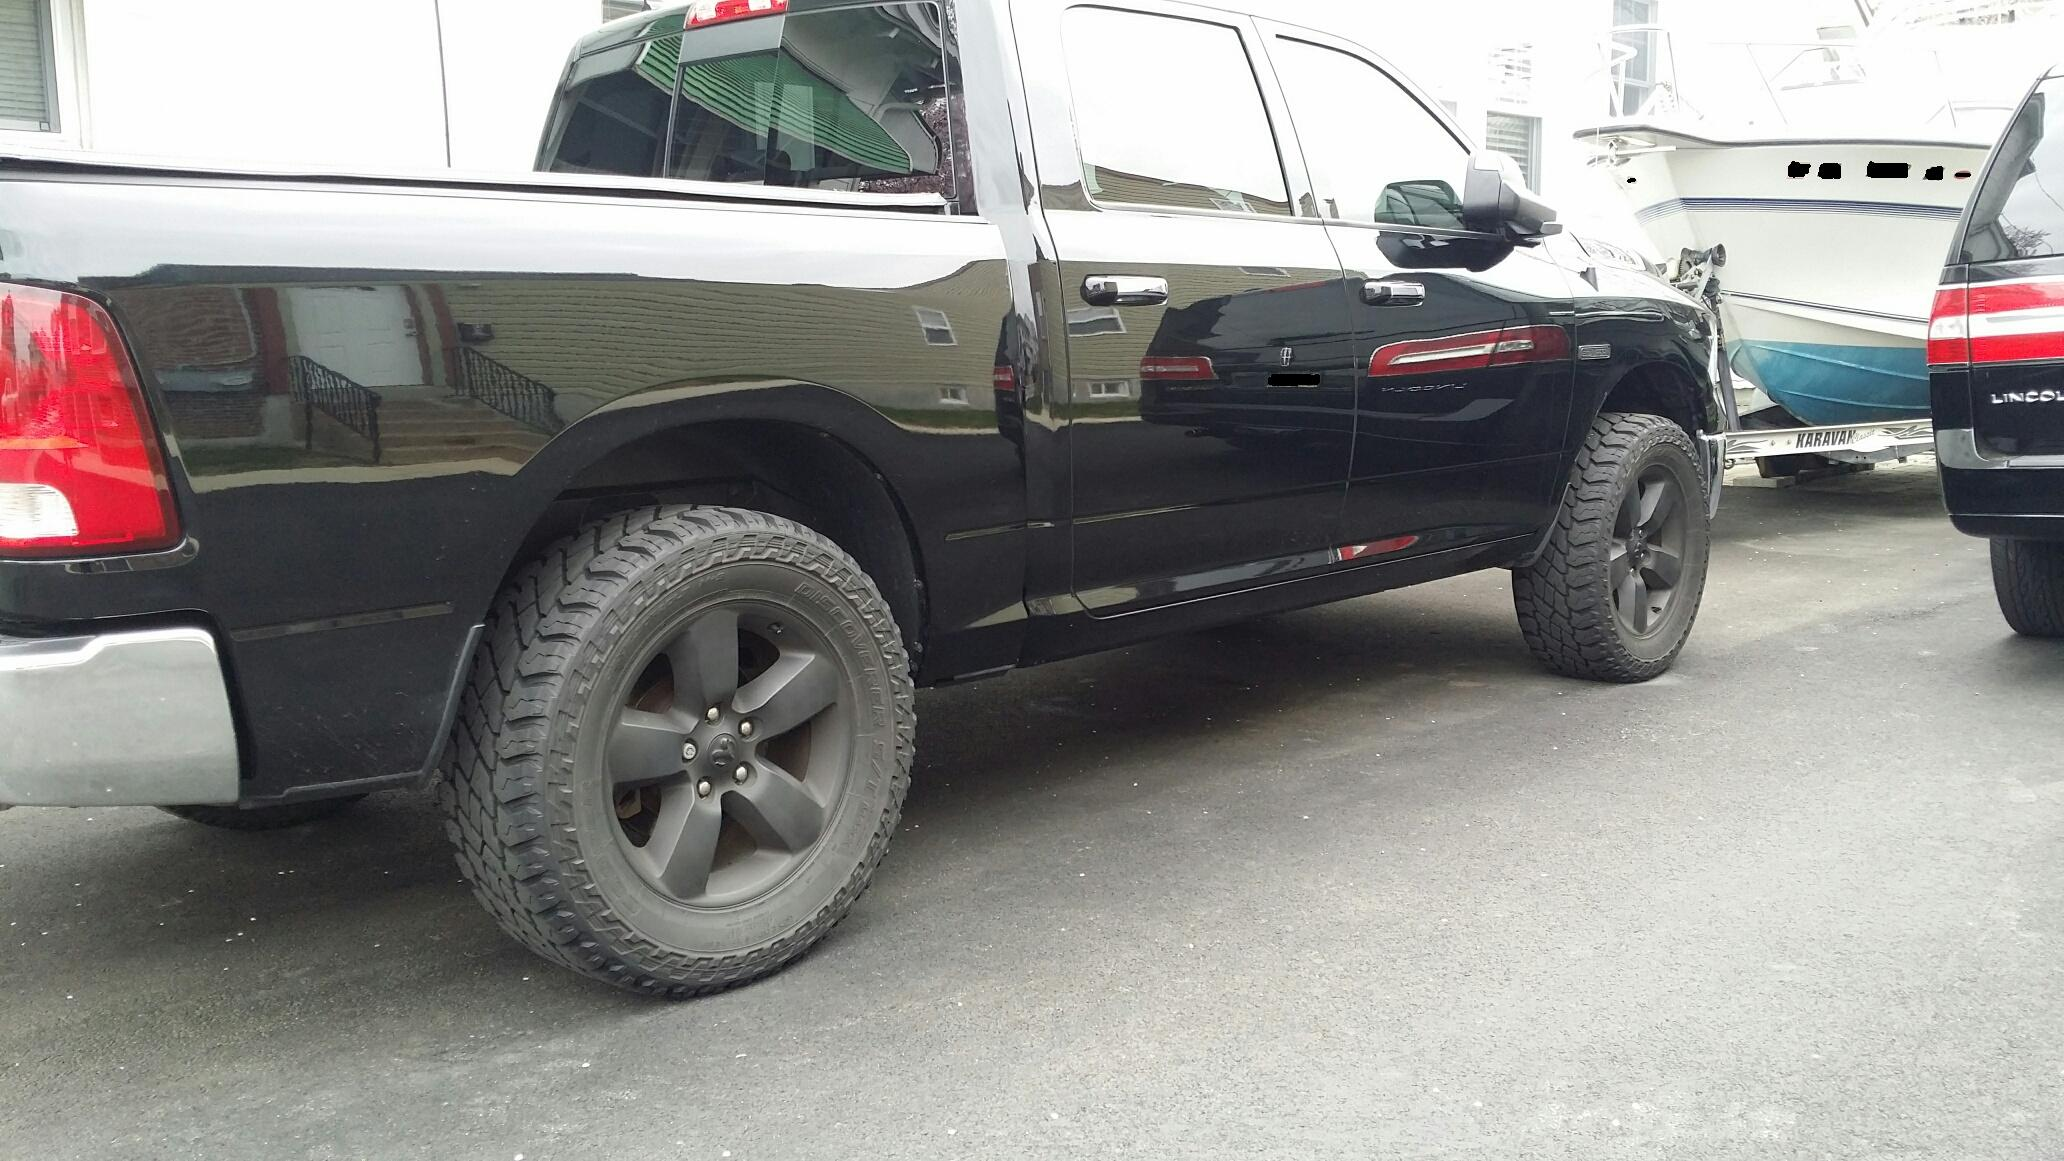 "35 inch tires on Stock 20"" wheels-Lift Kit required, or is level kit ok? - Page 2"